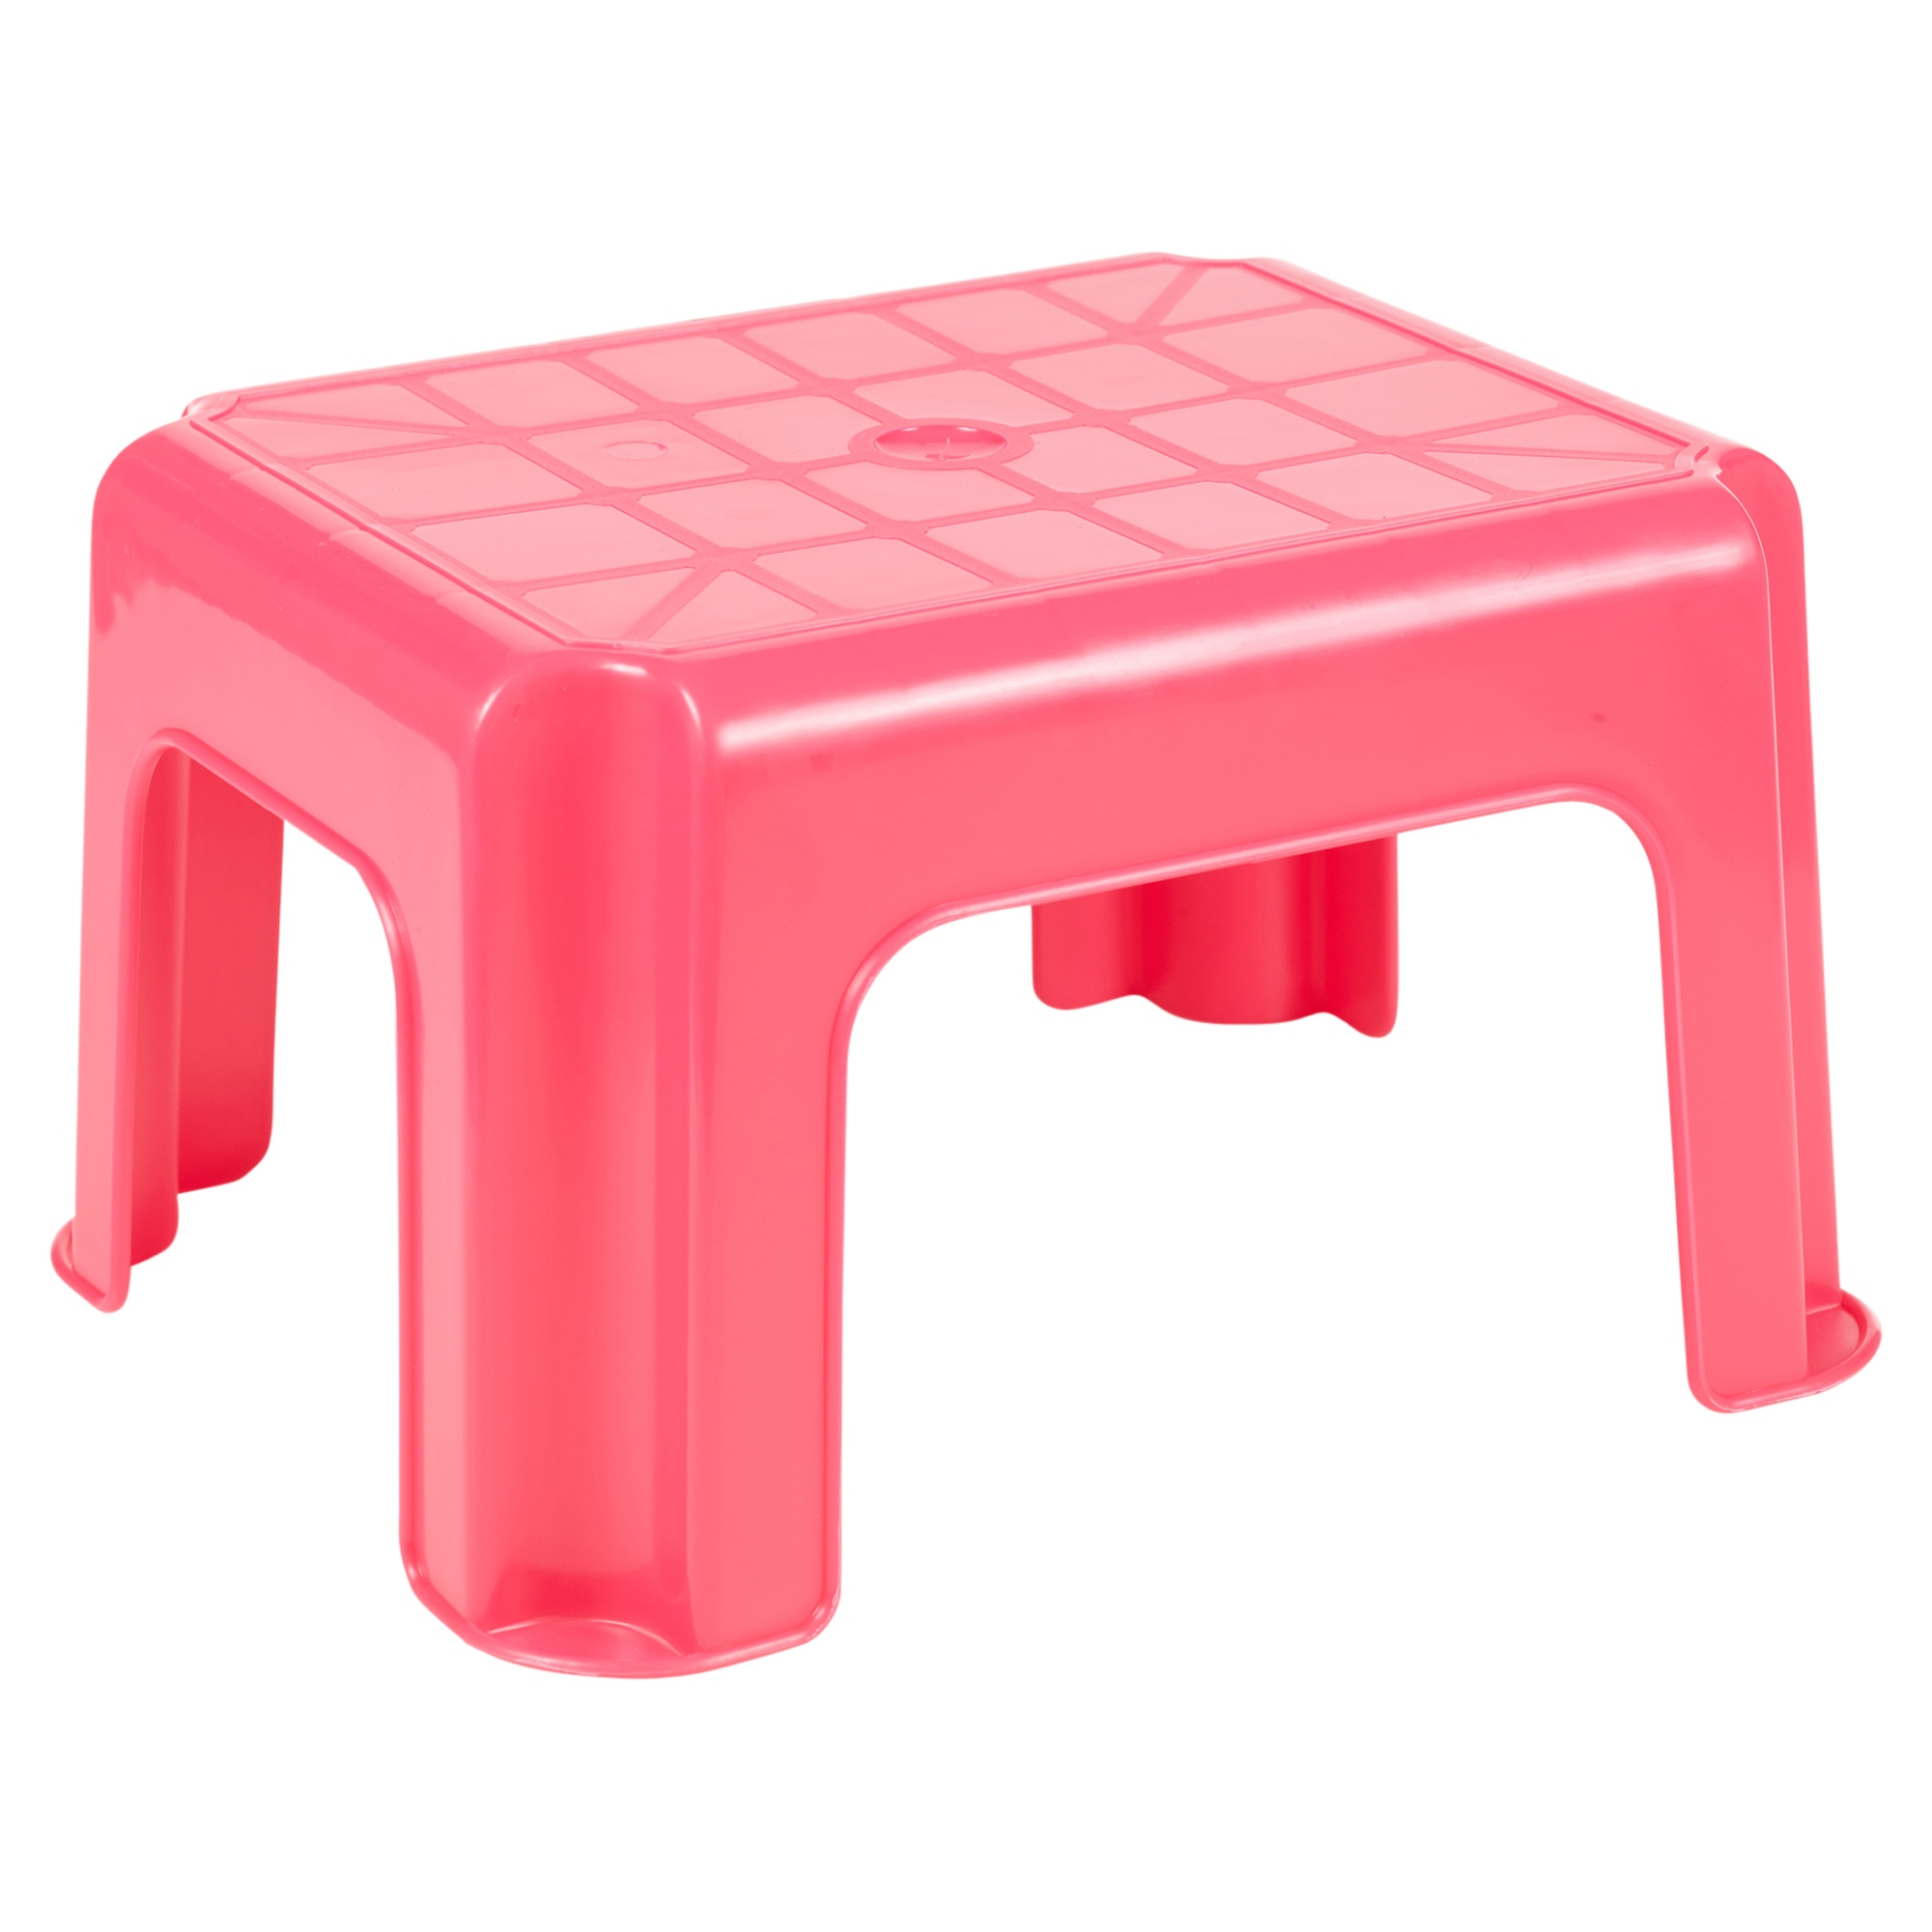 Amazing Details About Multi Purpose Sturdy Plastic Step Stool Stackable Kids Seat Anti Slip Children Ibusinesslaw Wood Chair Design Ideas Ibusinesslaworg